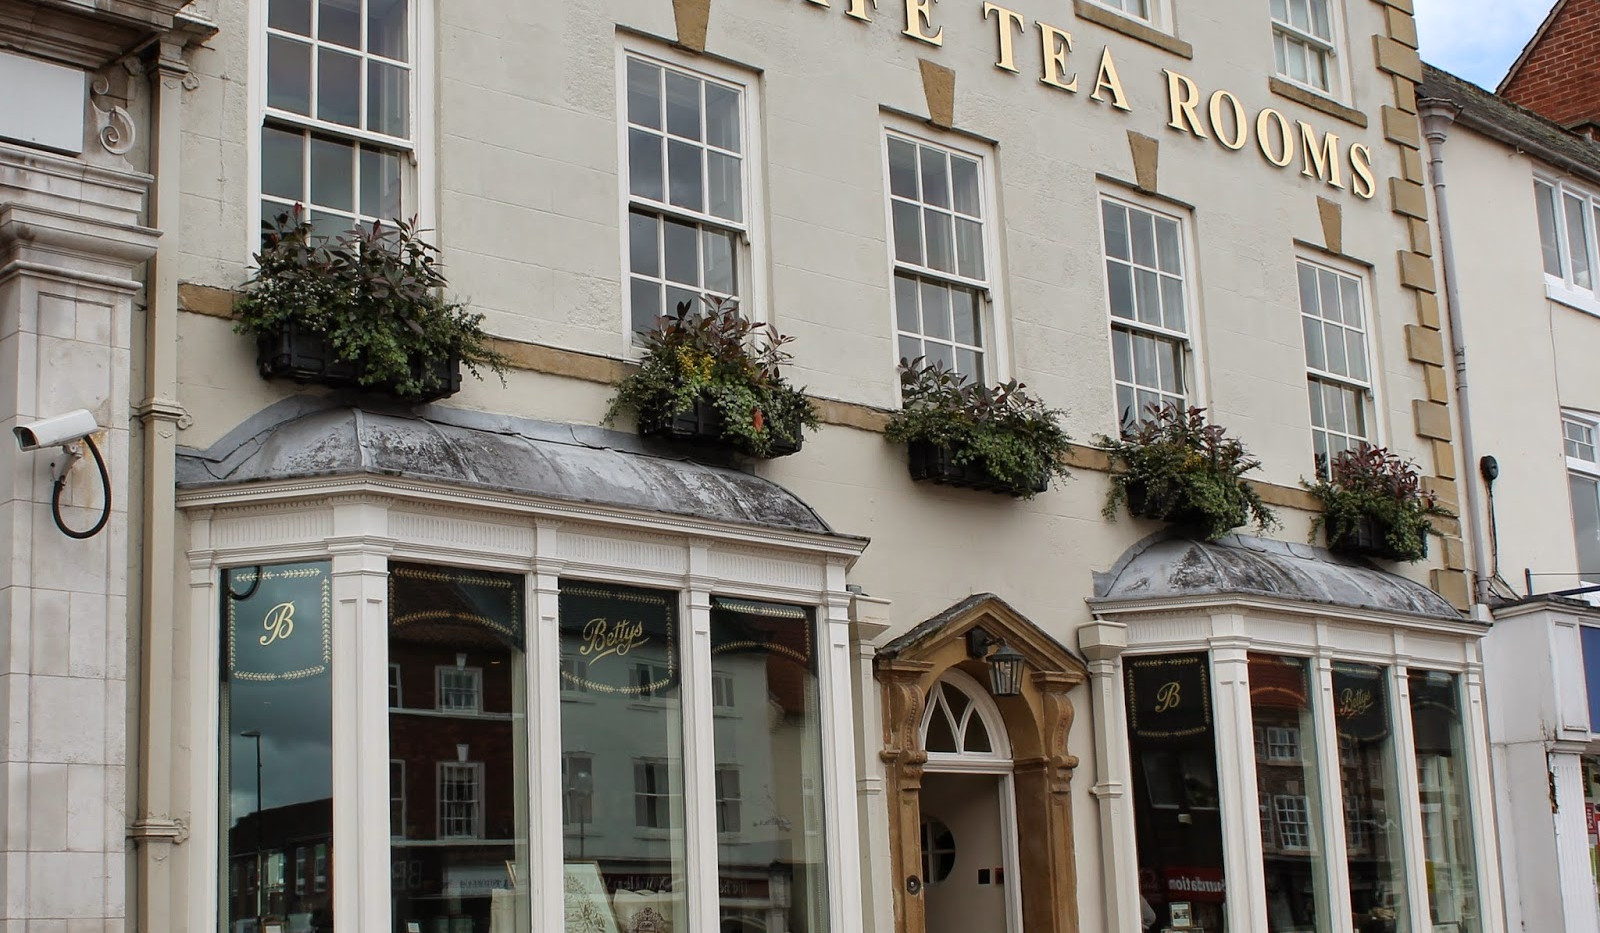 Bettys Tea Room, 14 miles from Hare Cottage